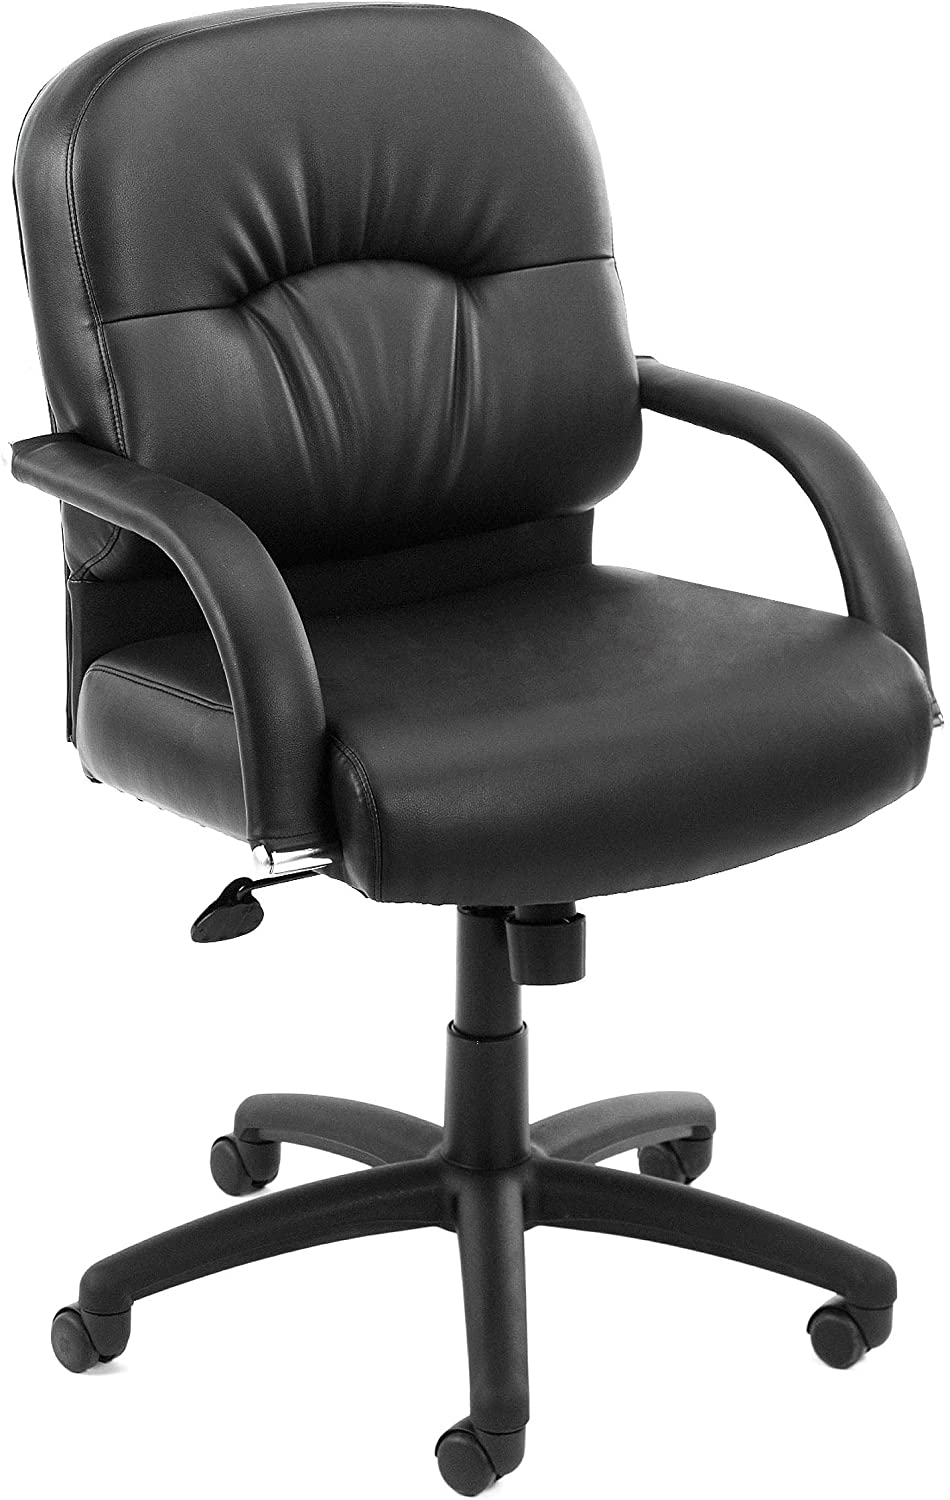 Boss Office Products Mid Back Caressoft Chair in Black